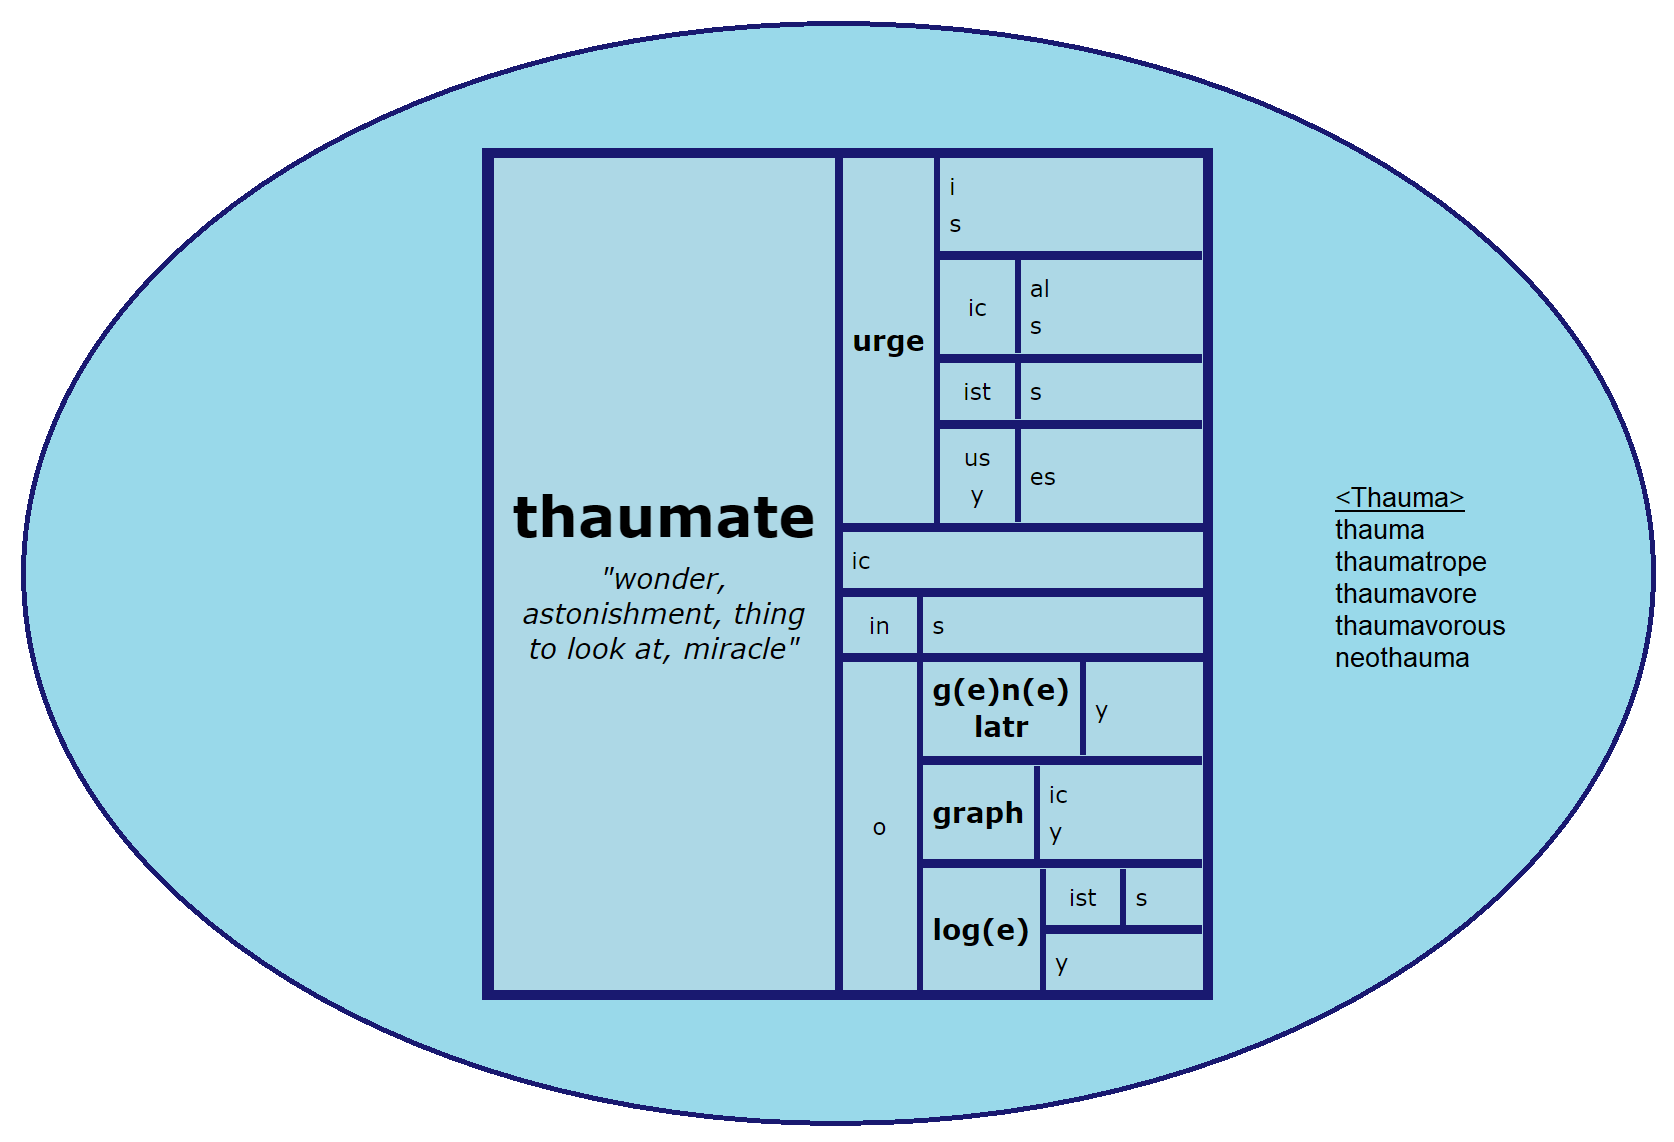 Thaumate Word Matrix